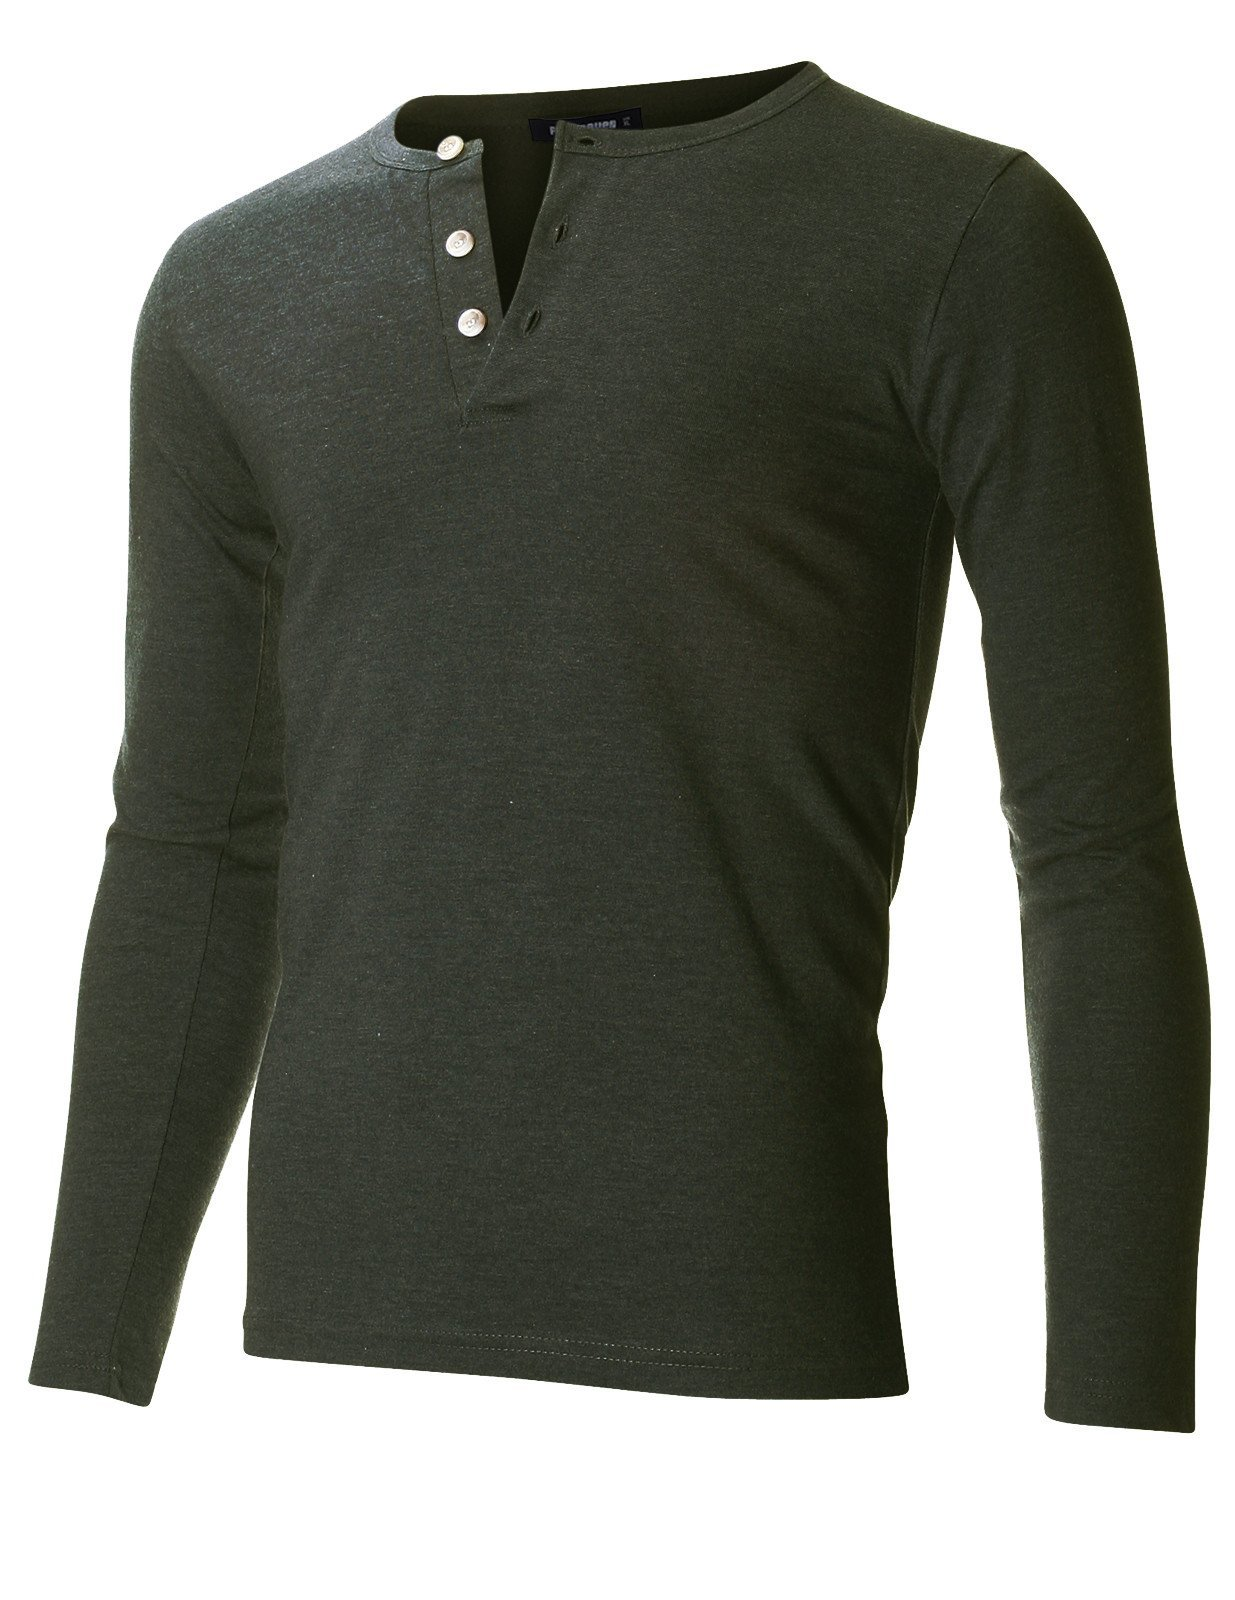 FLATSEVEN Men's Slim Fit Casual Long Sleeve Henley T Shirt (THL100) Army Green, L by FLATSEVEN